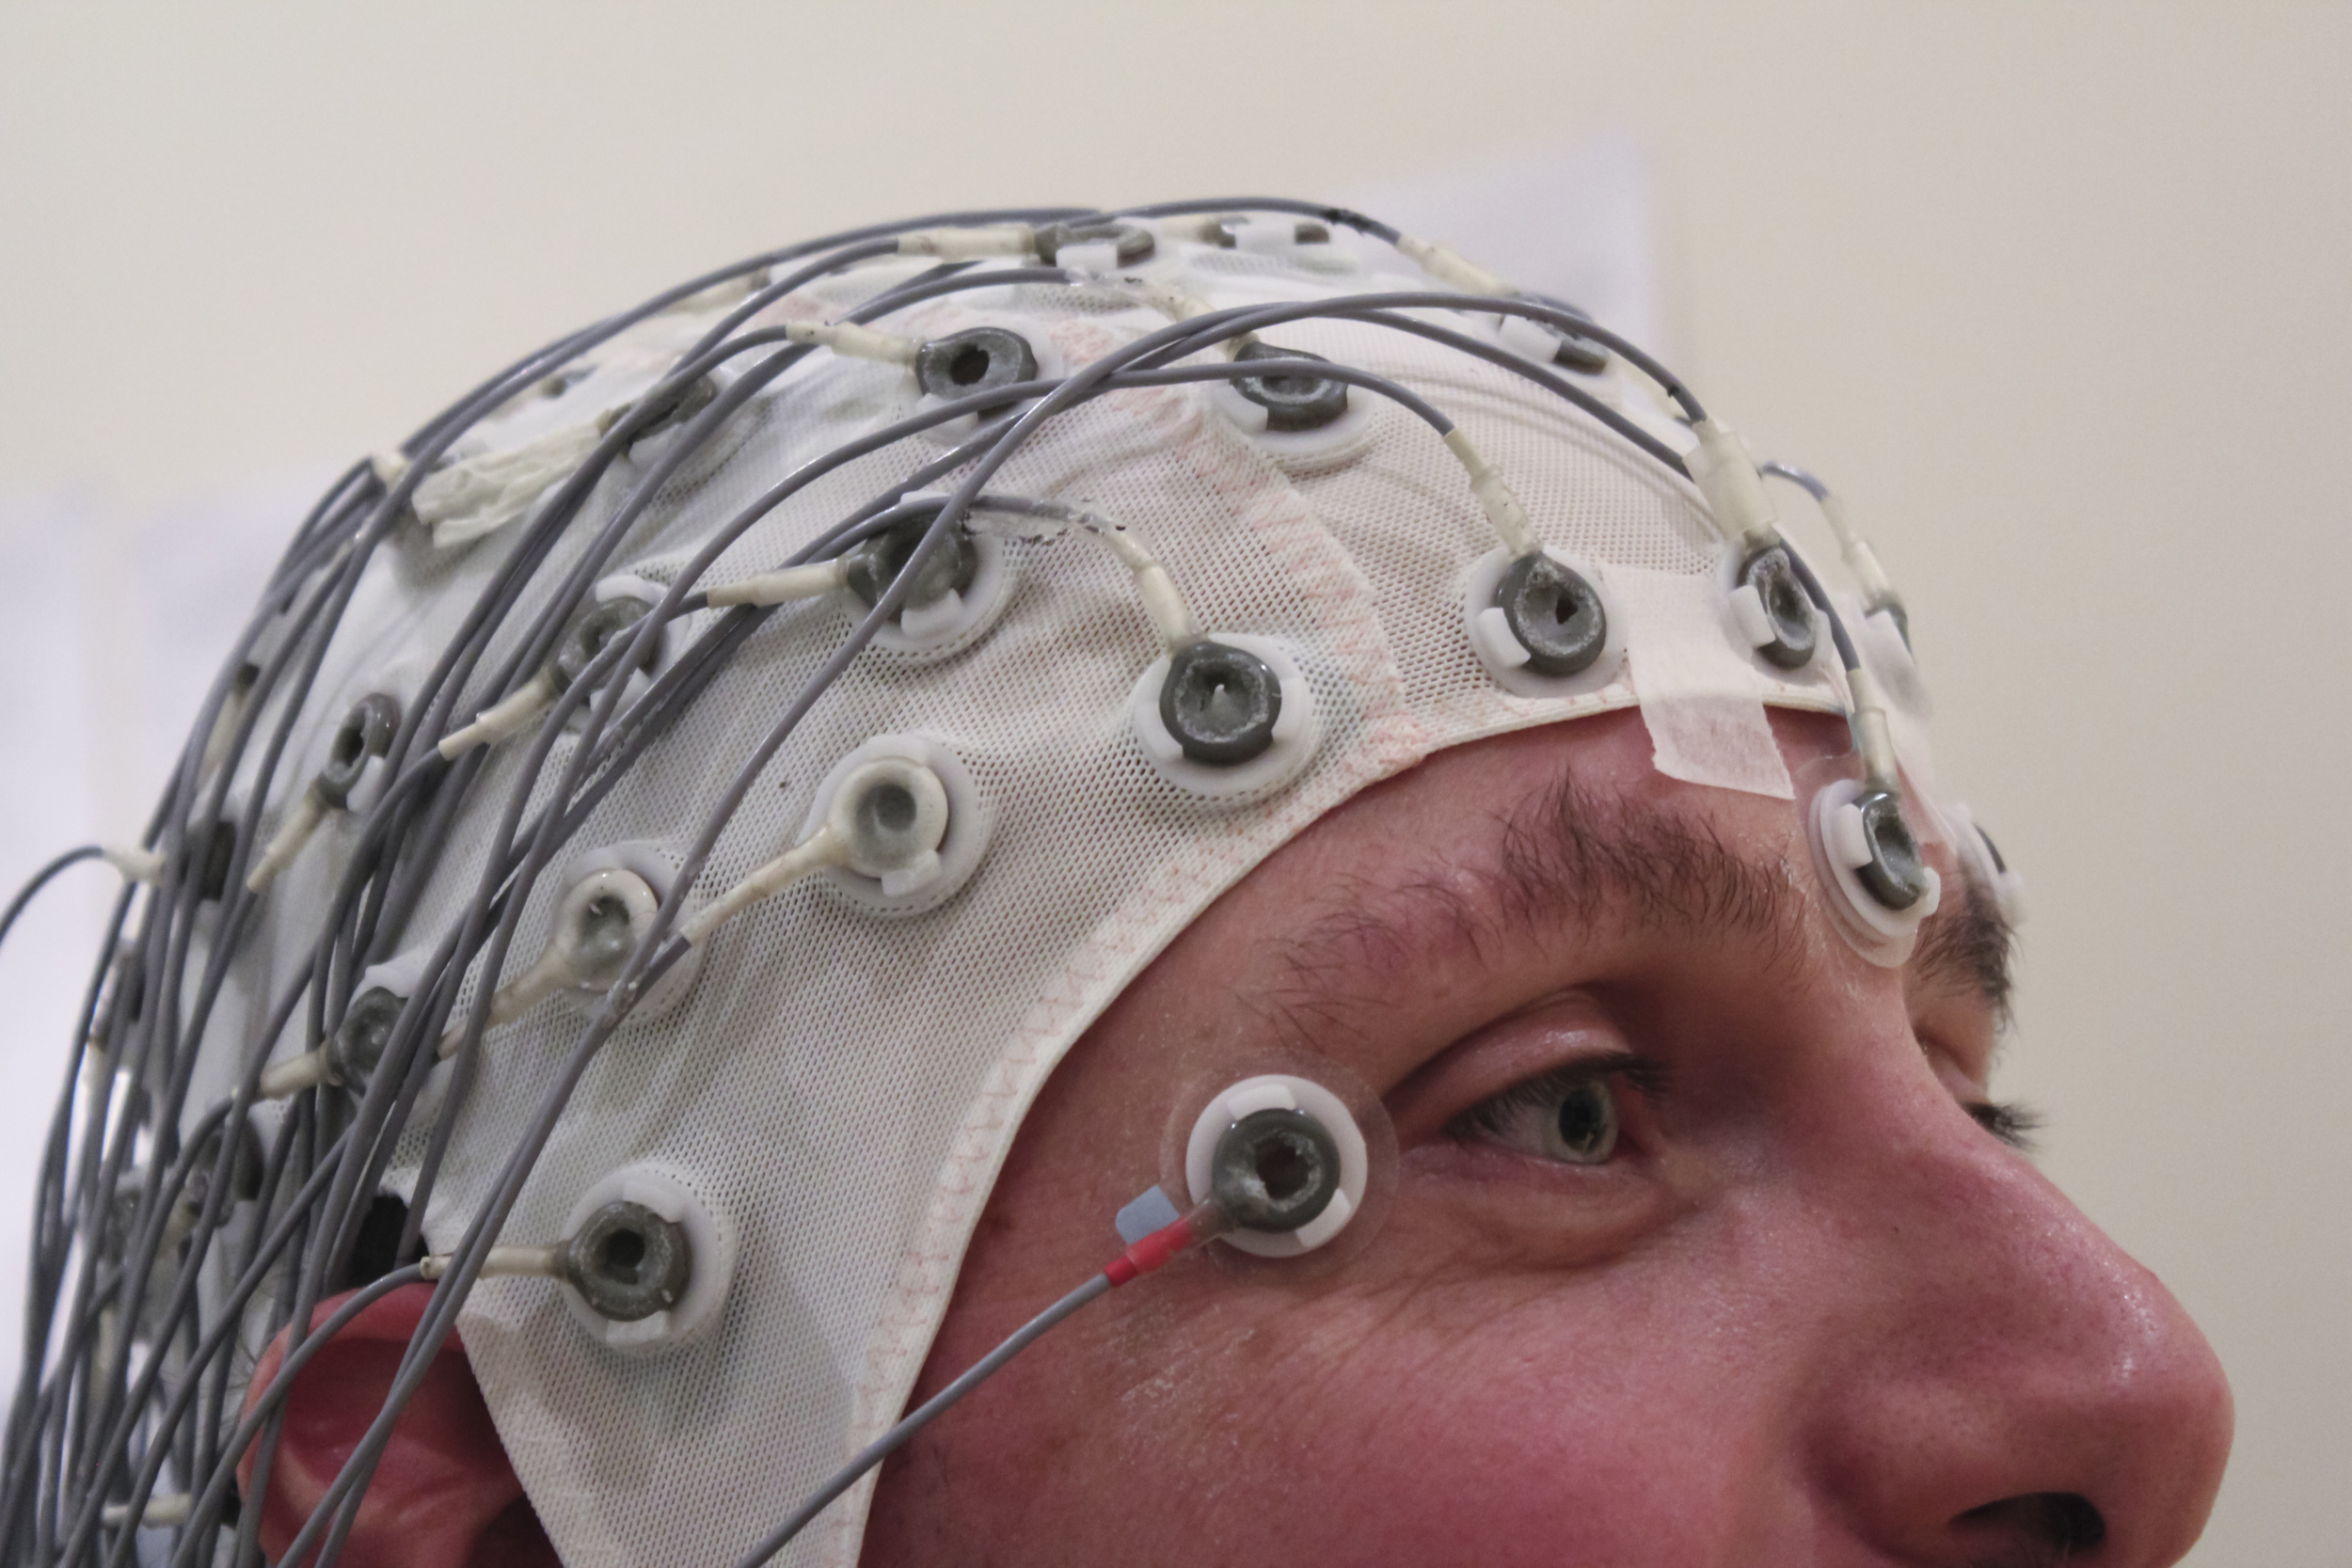 A patient being tested with EEG